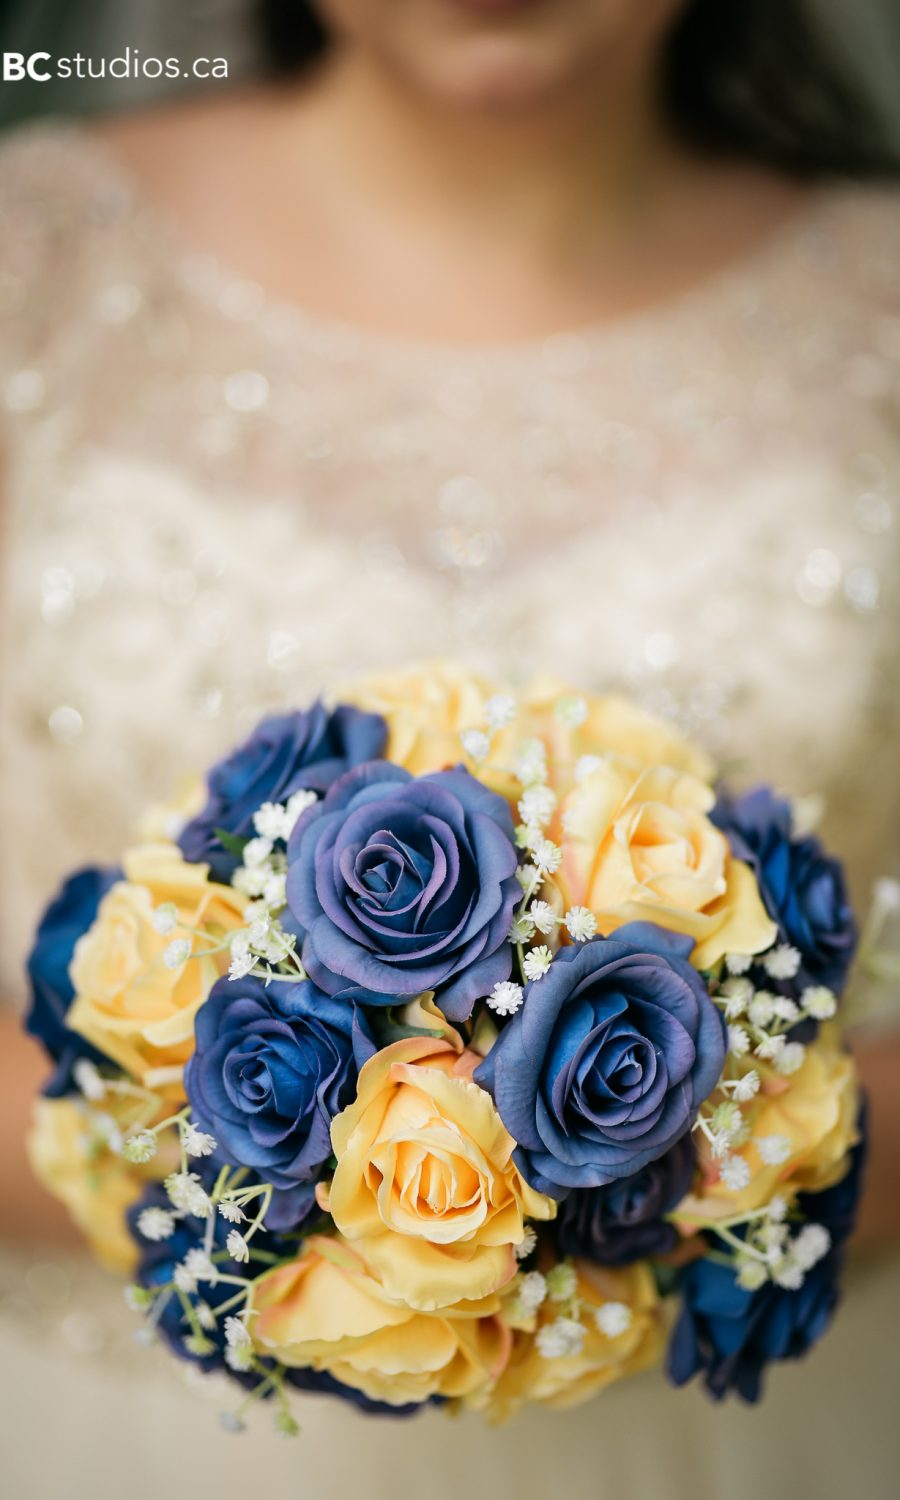 bouquet photo - bride - yellow and blues